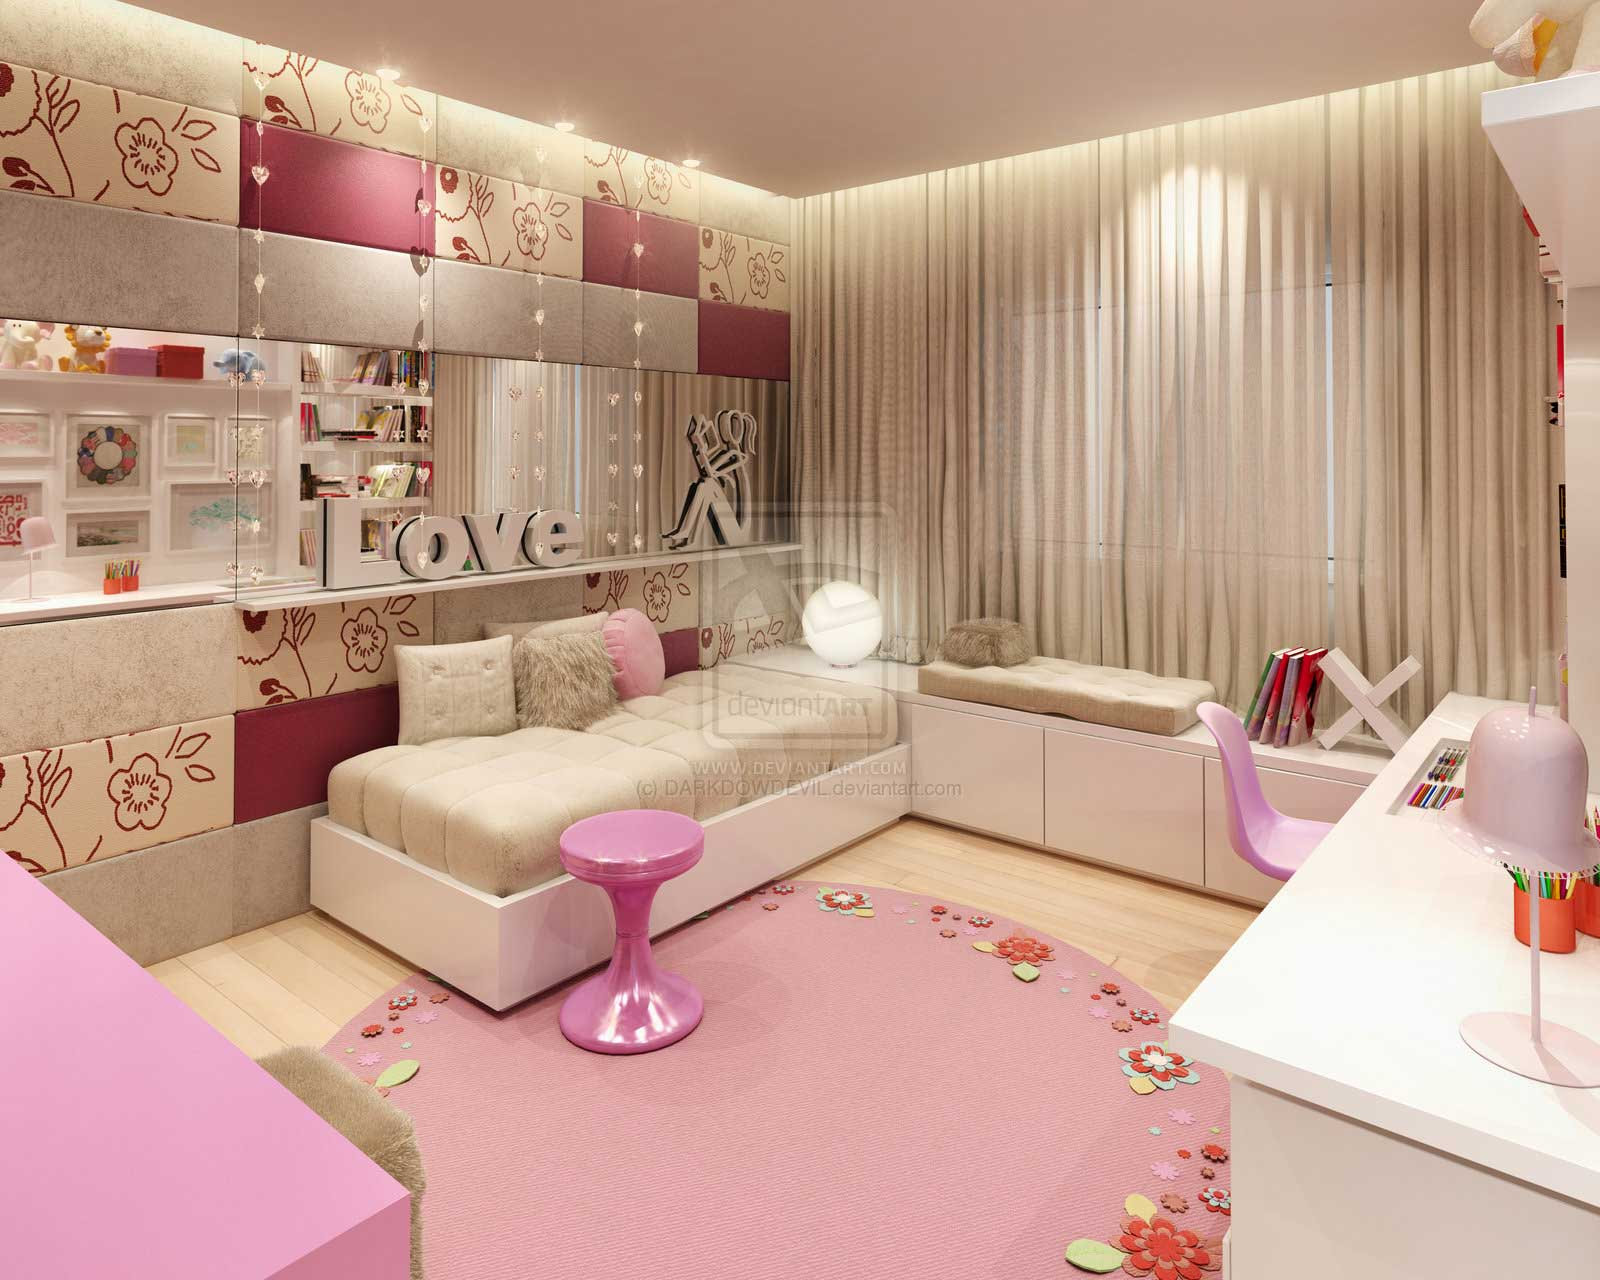 Comfort pink girl bedroom by darkdowdevil interior design ideas - Awesome bedrooms for teenage girls ...